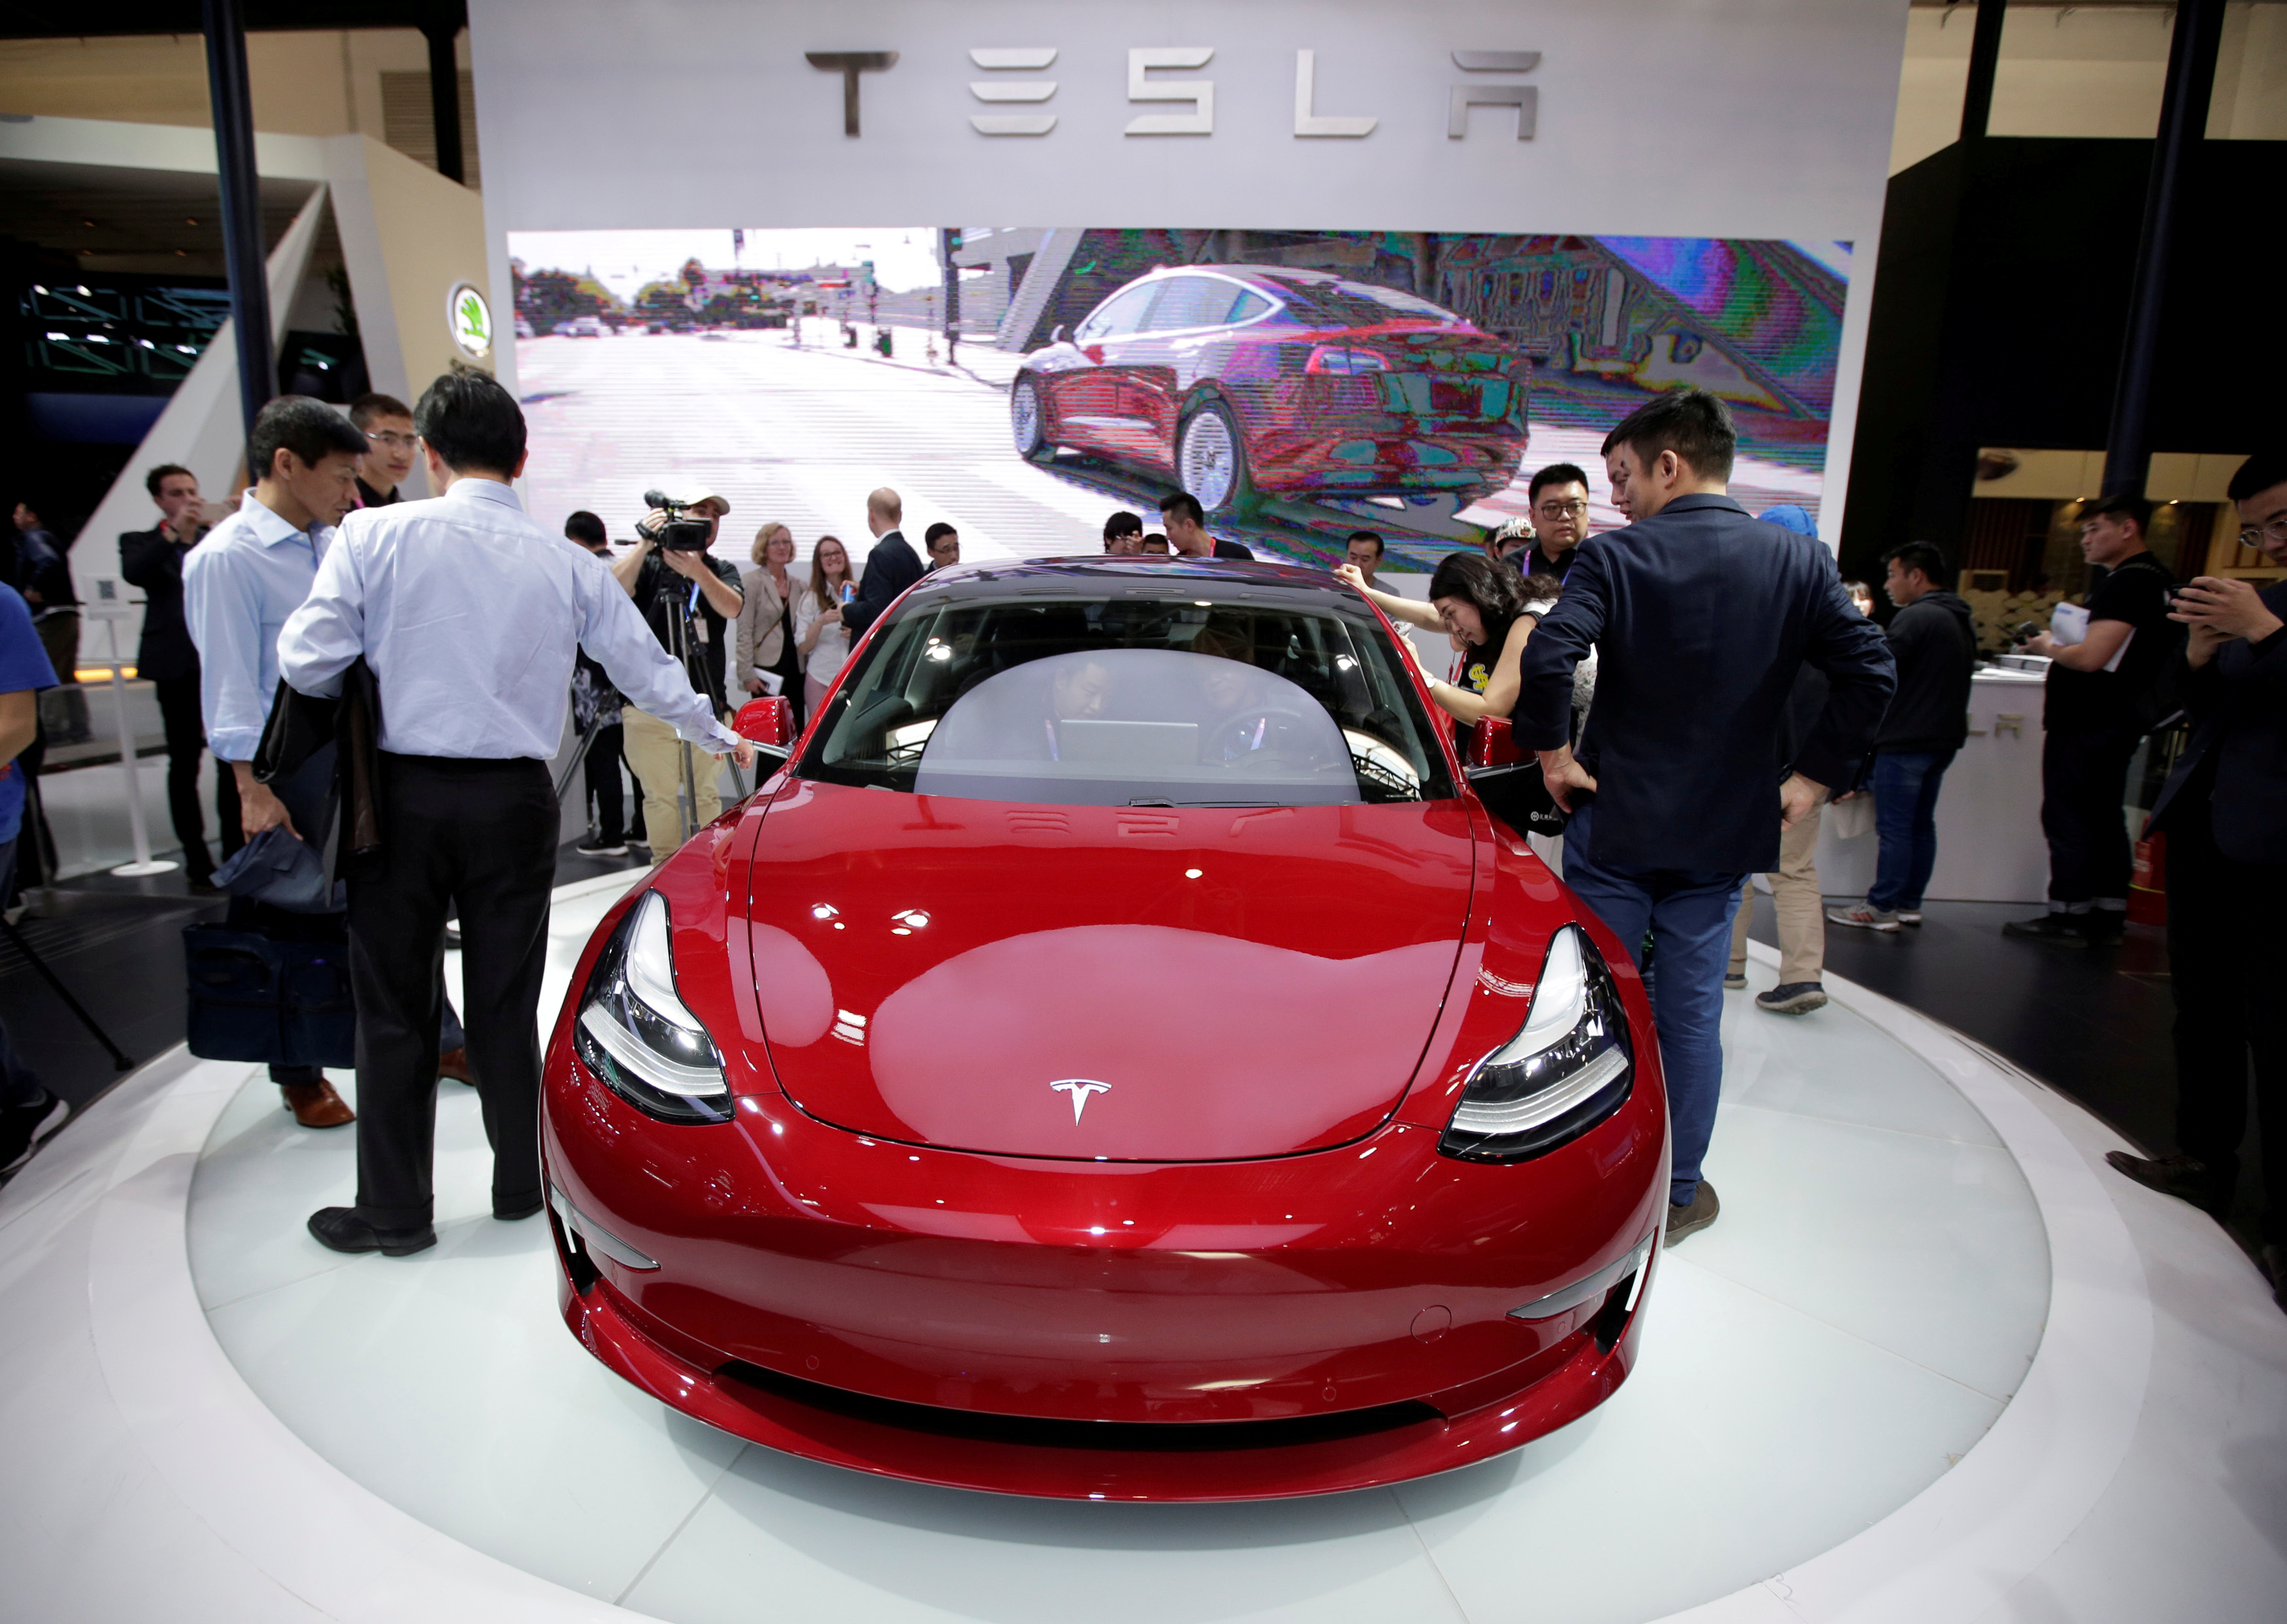 A Tesla Model 3 car is displayed during a media preview at the Auto China 2018 motor show in Beijing, China April 25, 2018. REUTERS/Jason Lee